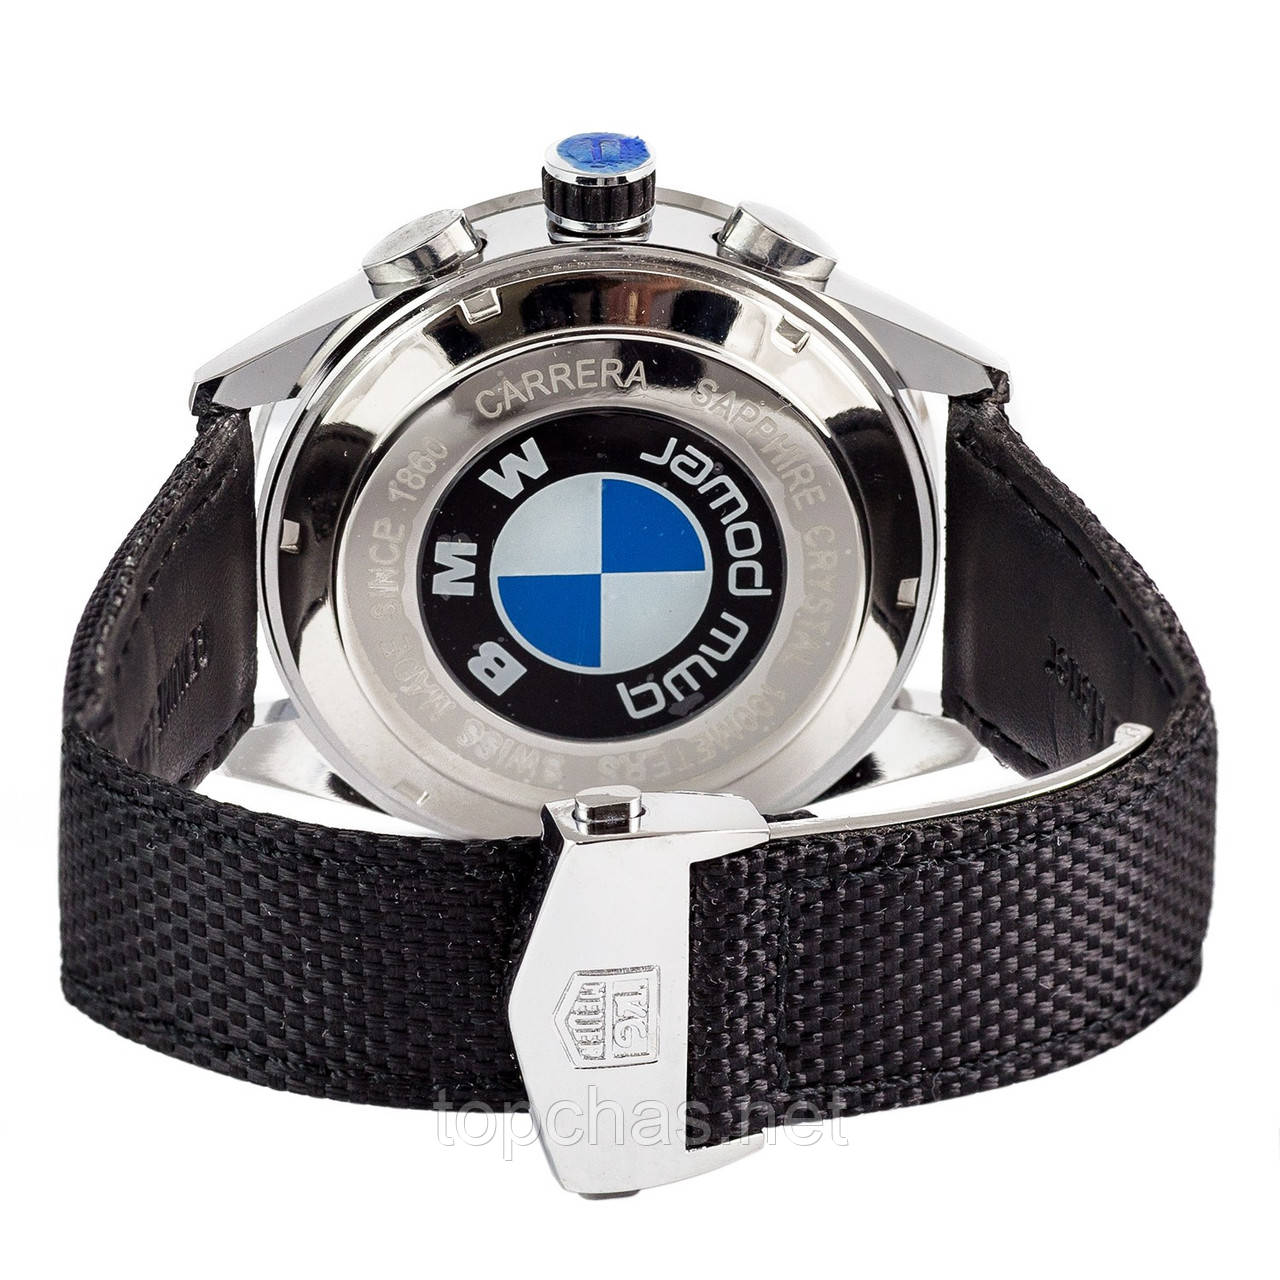 ������� ��������� �������� ���� ��������� Tag Heuer BMW Power Carrera GMT Chronograph �� ������������� �������, ���� 2